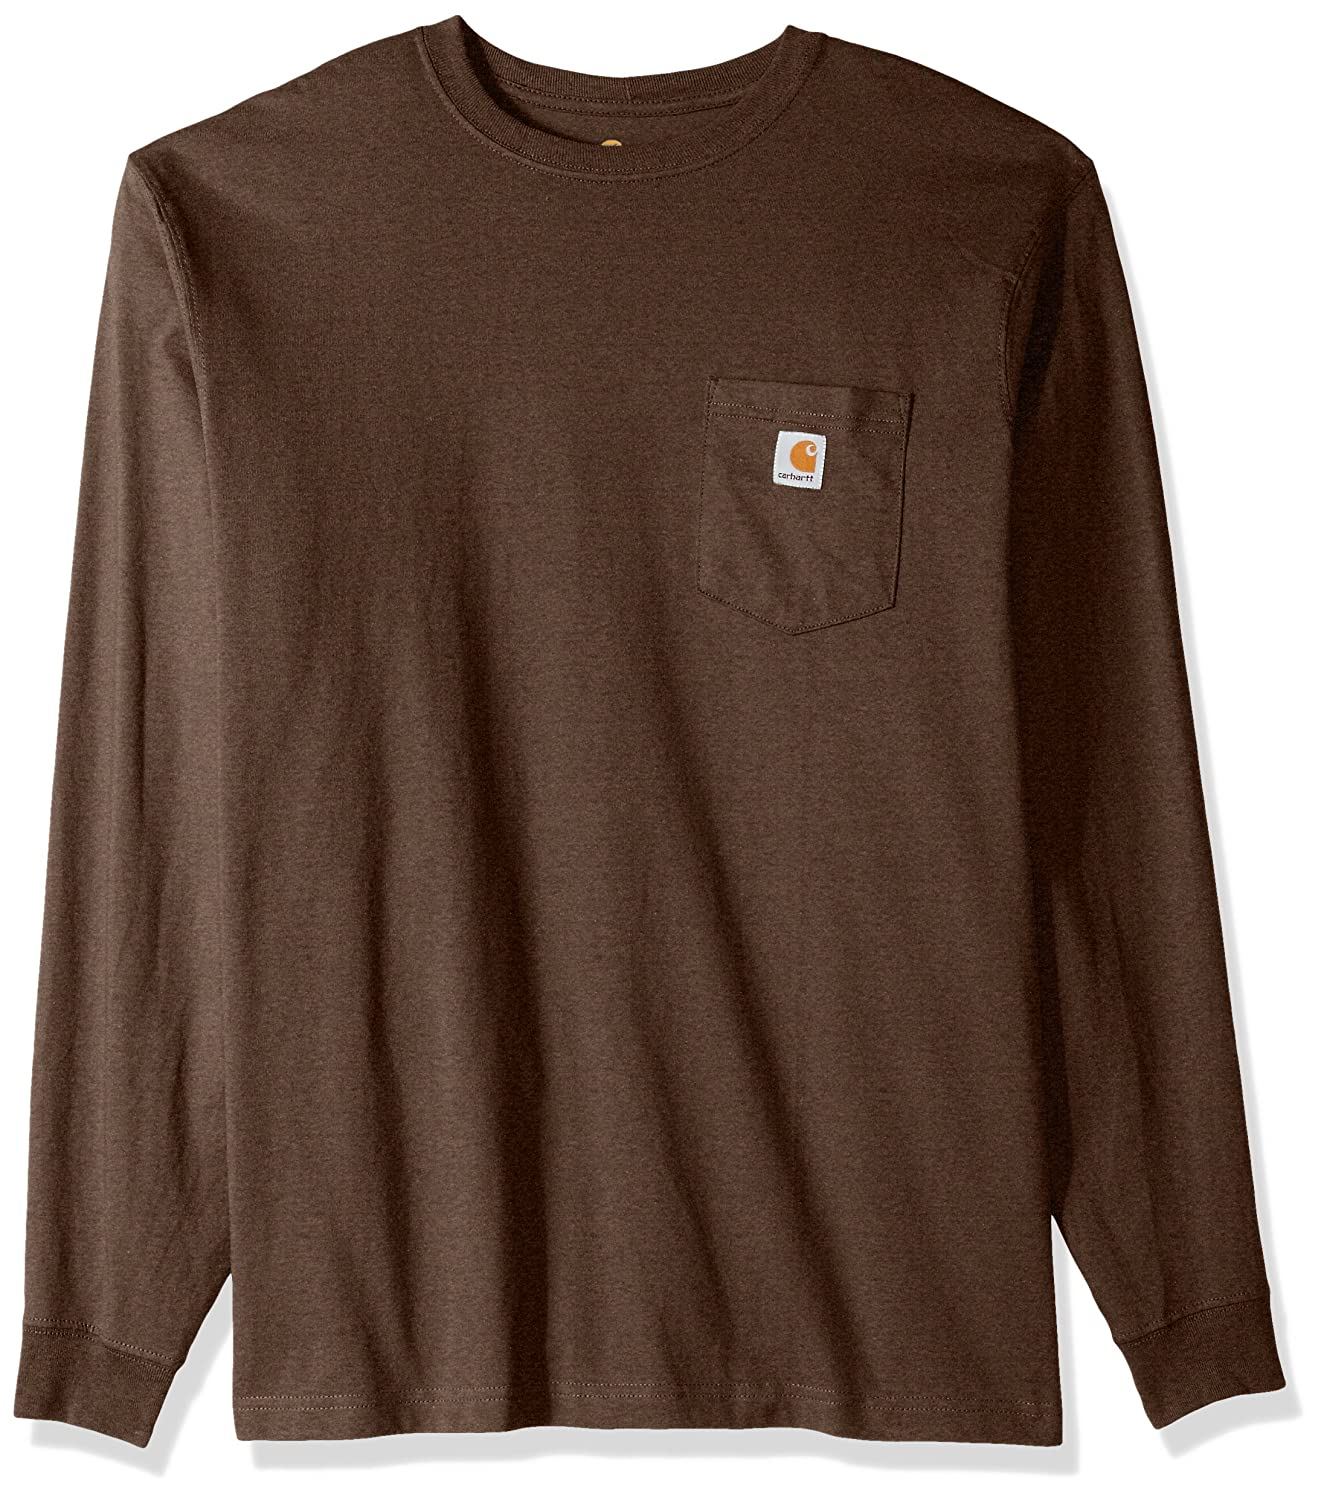 Carhartt SHIRT メンズ B06WVD9WFB X-Large Tall|Dark Coffee Heather Dark Coffee Heather X-Large Tall